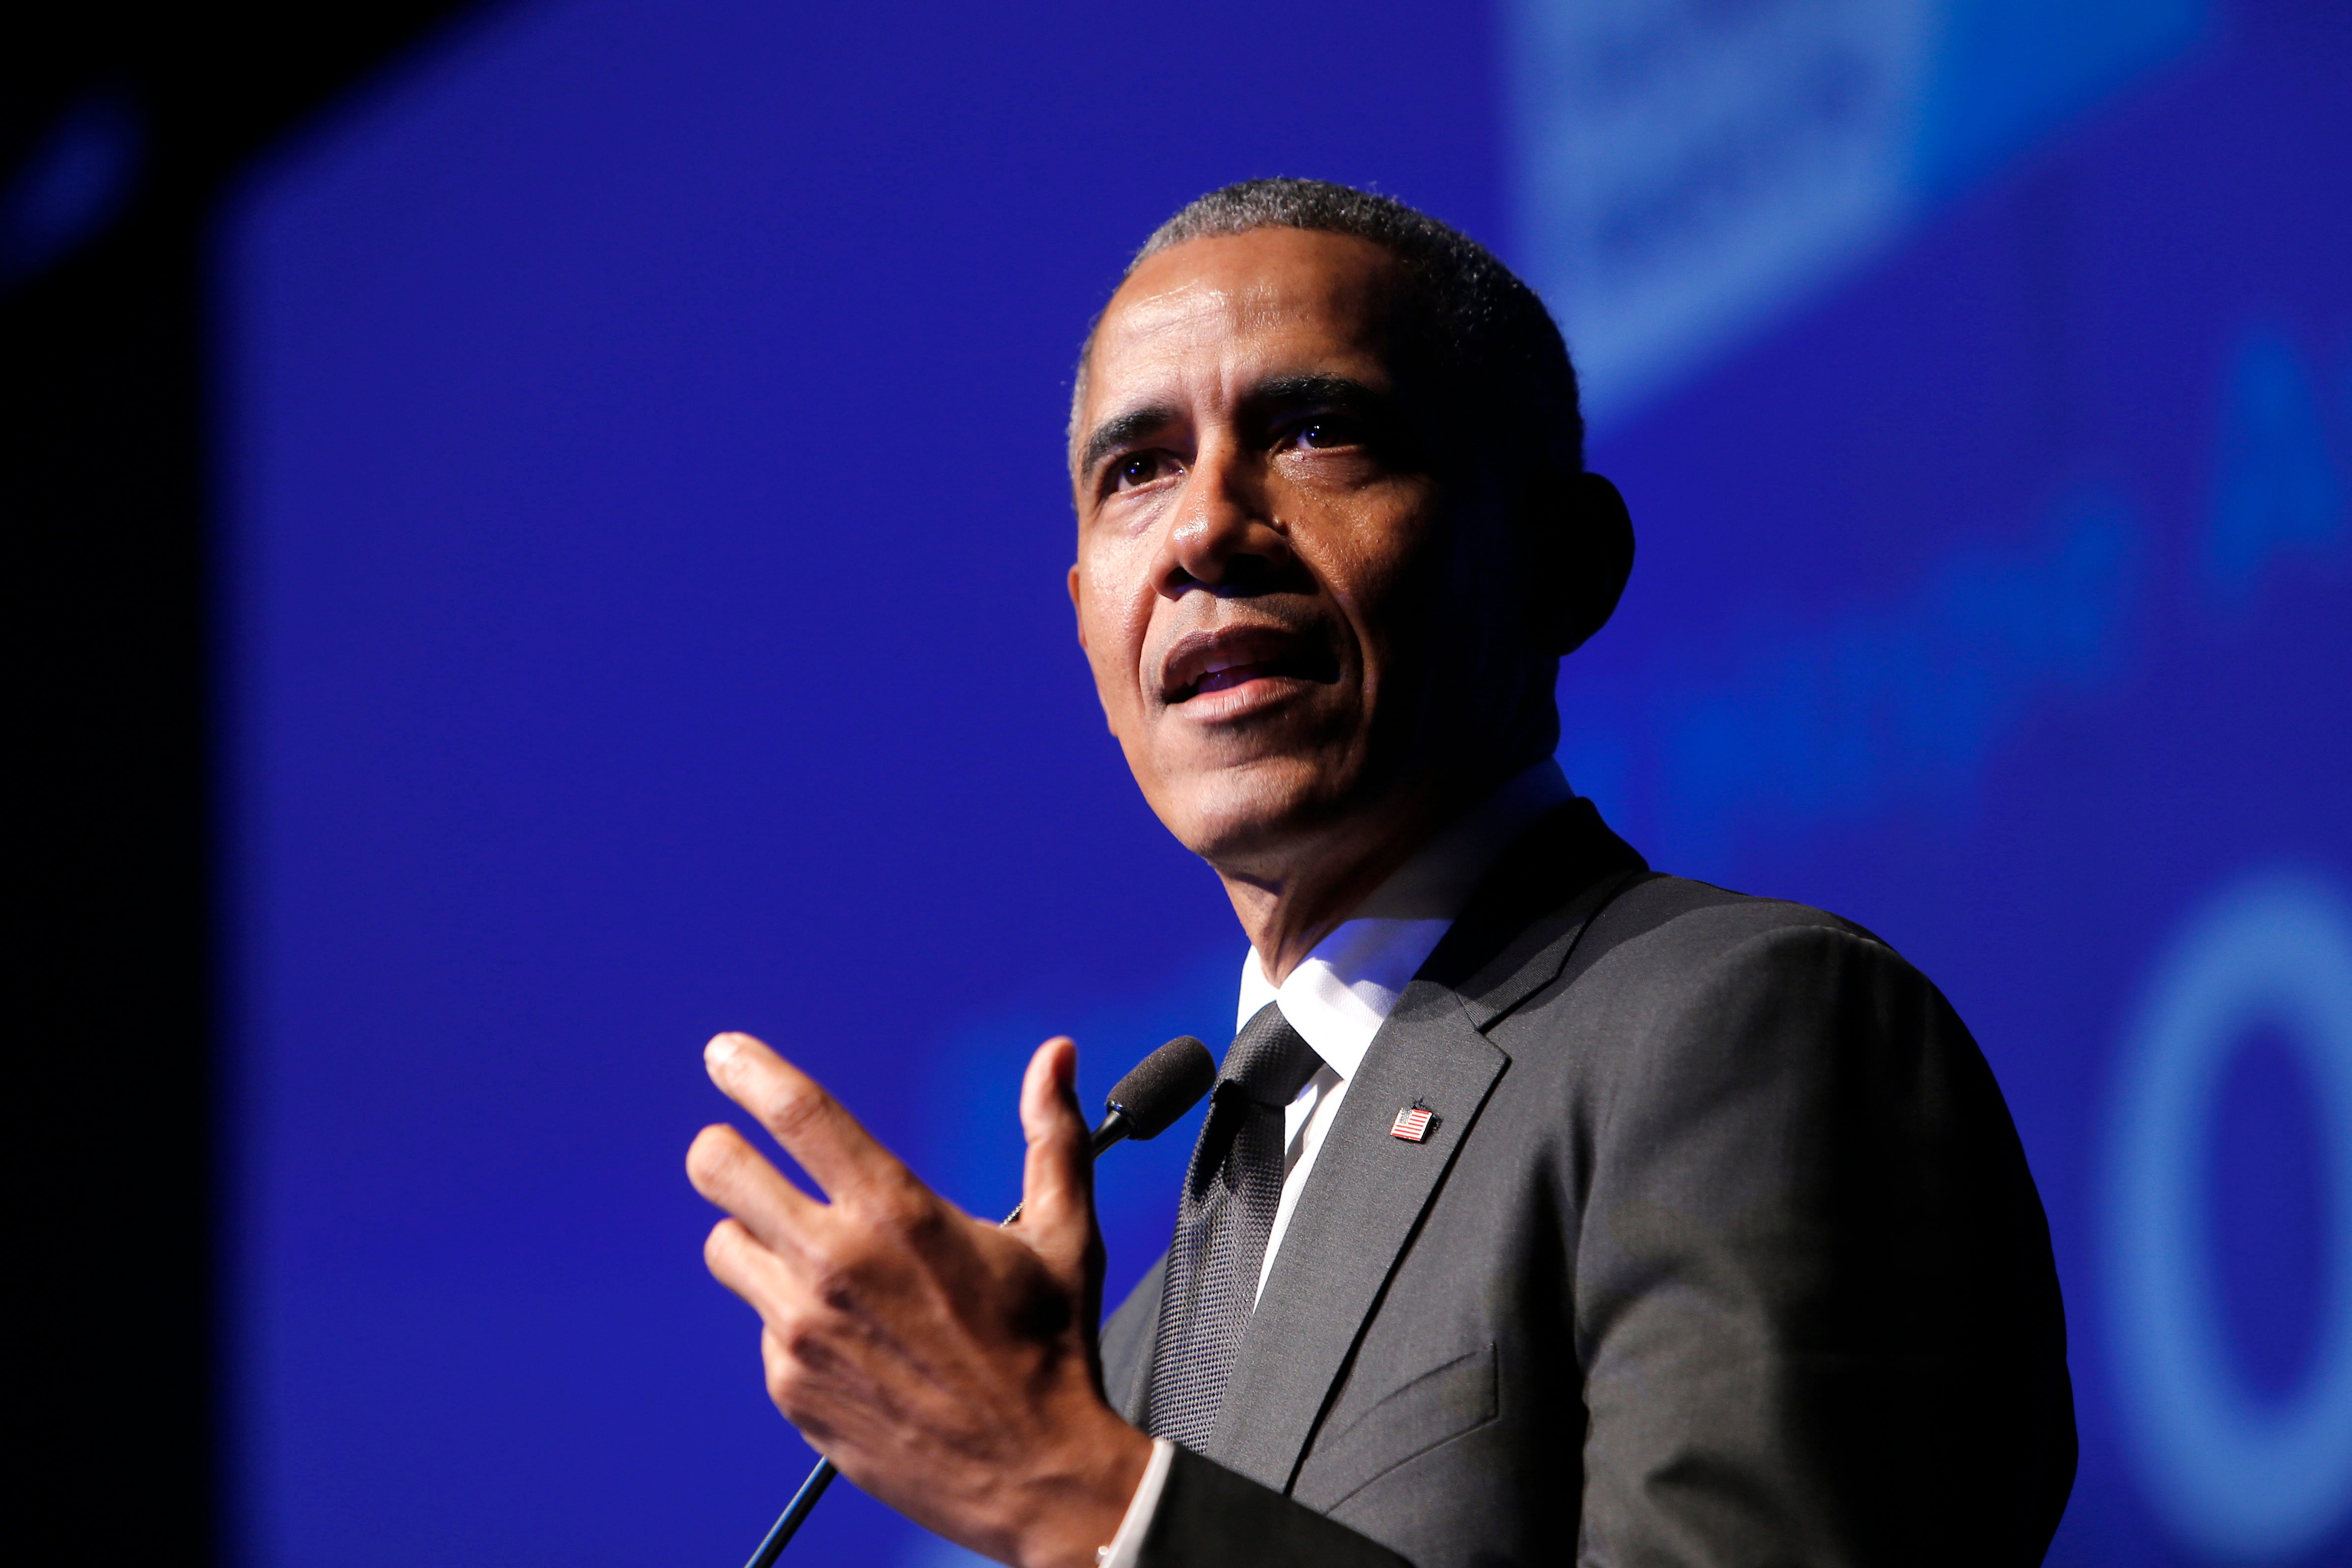 Fair maps: Barack Obama launches new initiative to help take on partisan gerrymandering